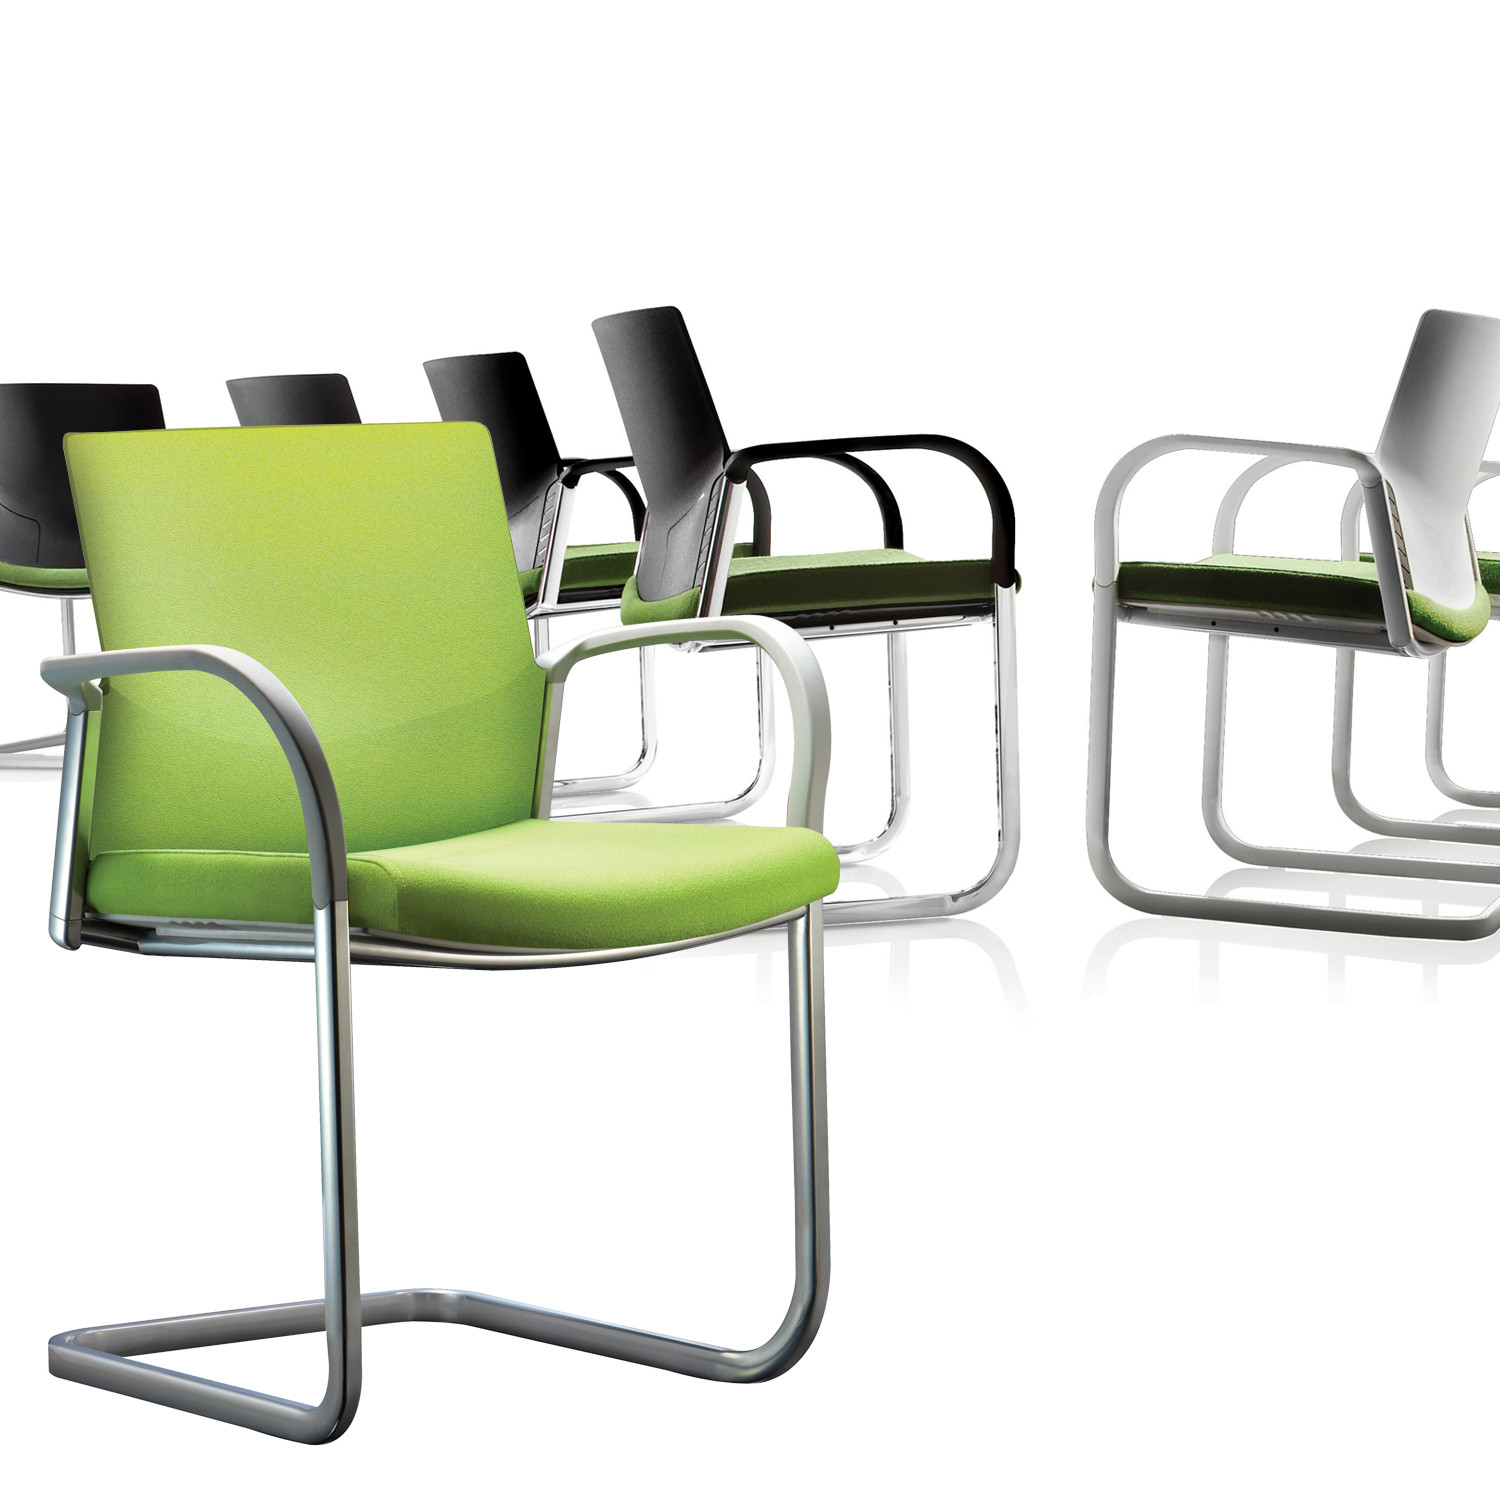 Is Visitors Chairs